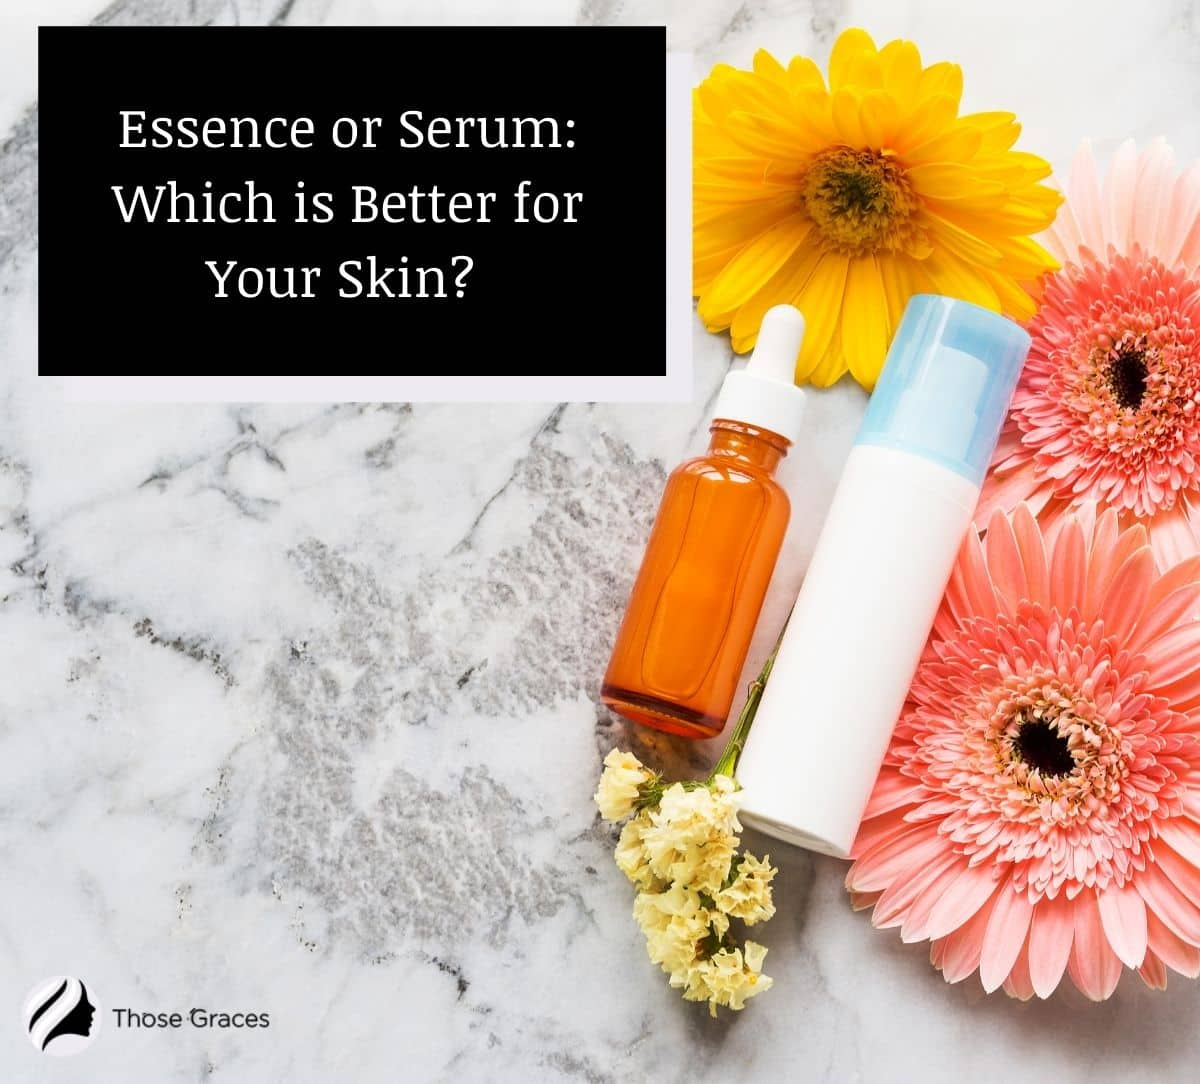 face serum and essence put on top of the table but which is better: essence or serum?